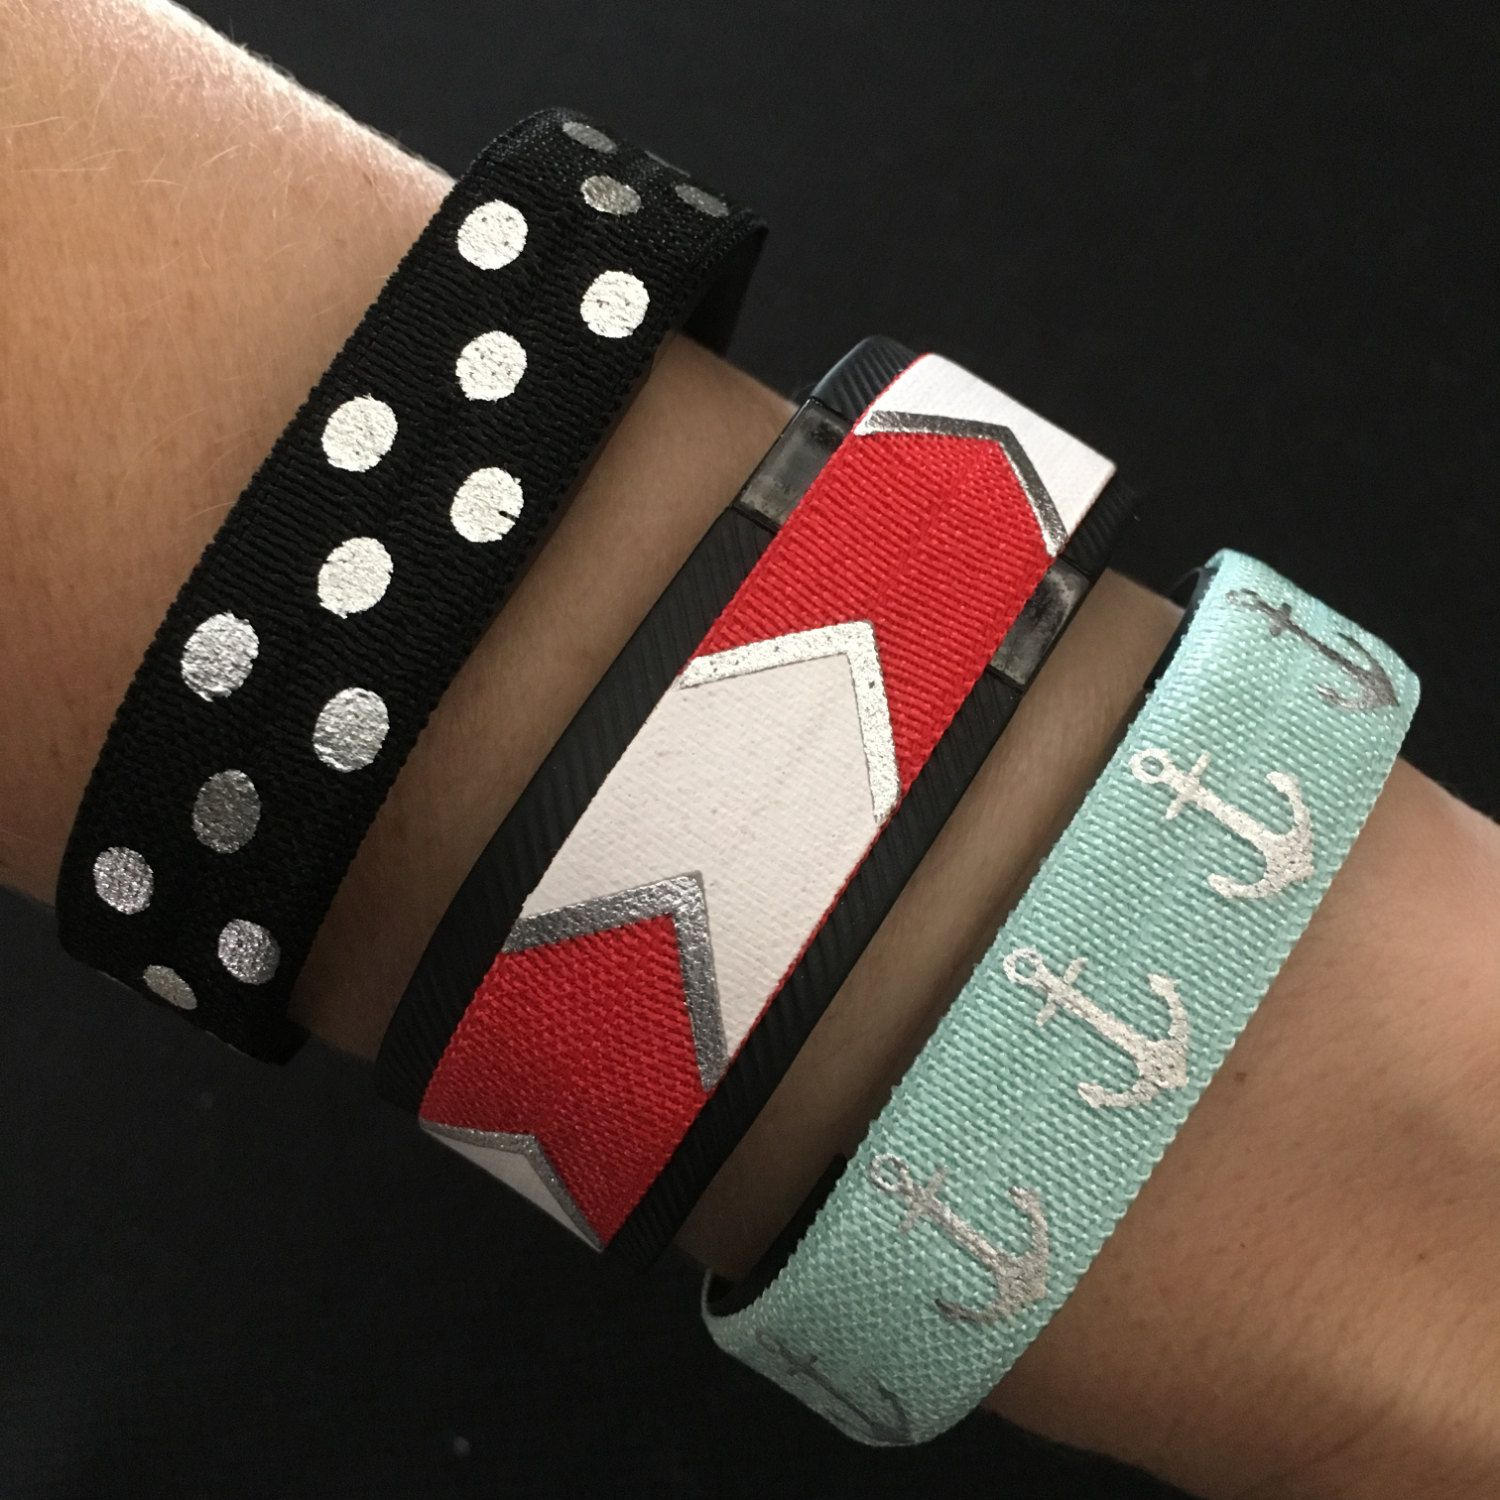 Anchor Fitbit Cover. Fitbit Alta, Flex, Flex 2, Charge & ChargeHR Elastic Bands, Set/3: Black/Lg Silv Dots (PD21), Red/Silv BC (BC30), Aqua/Silver Anchors (AN12) by BananaWindDesign on Etsy